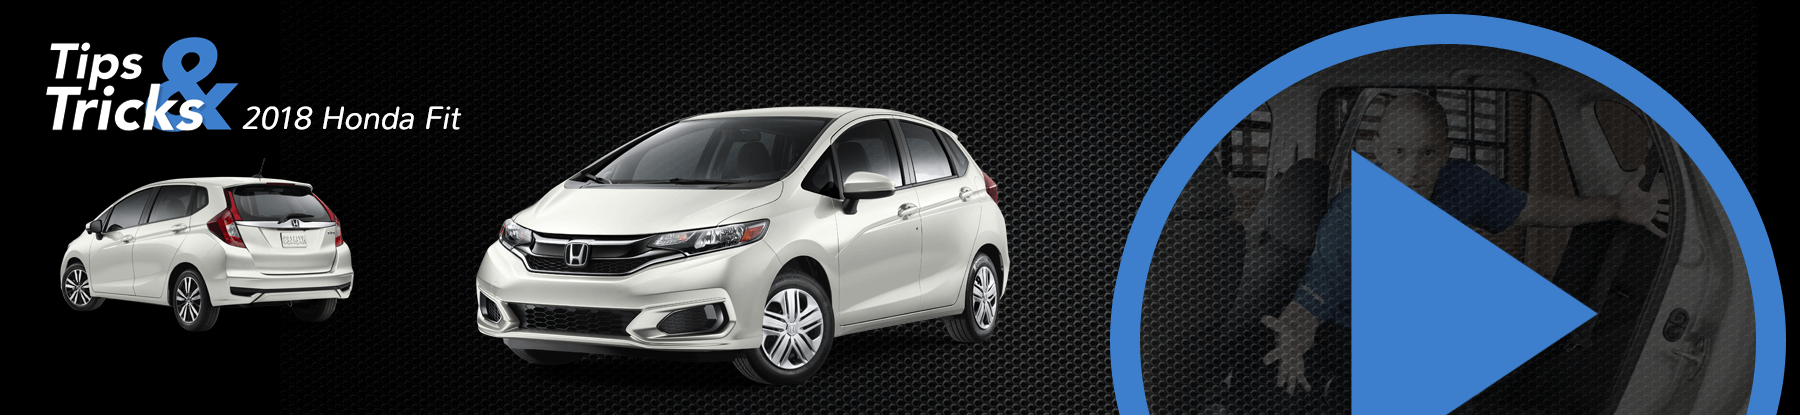 Honda Fit Tips and Tricks Banner